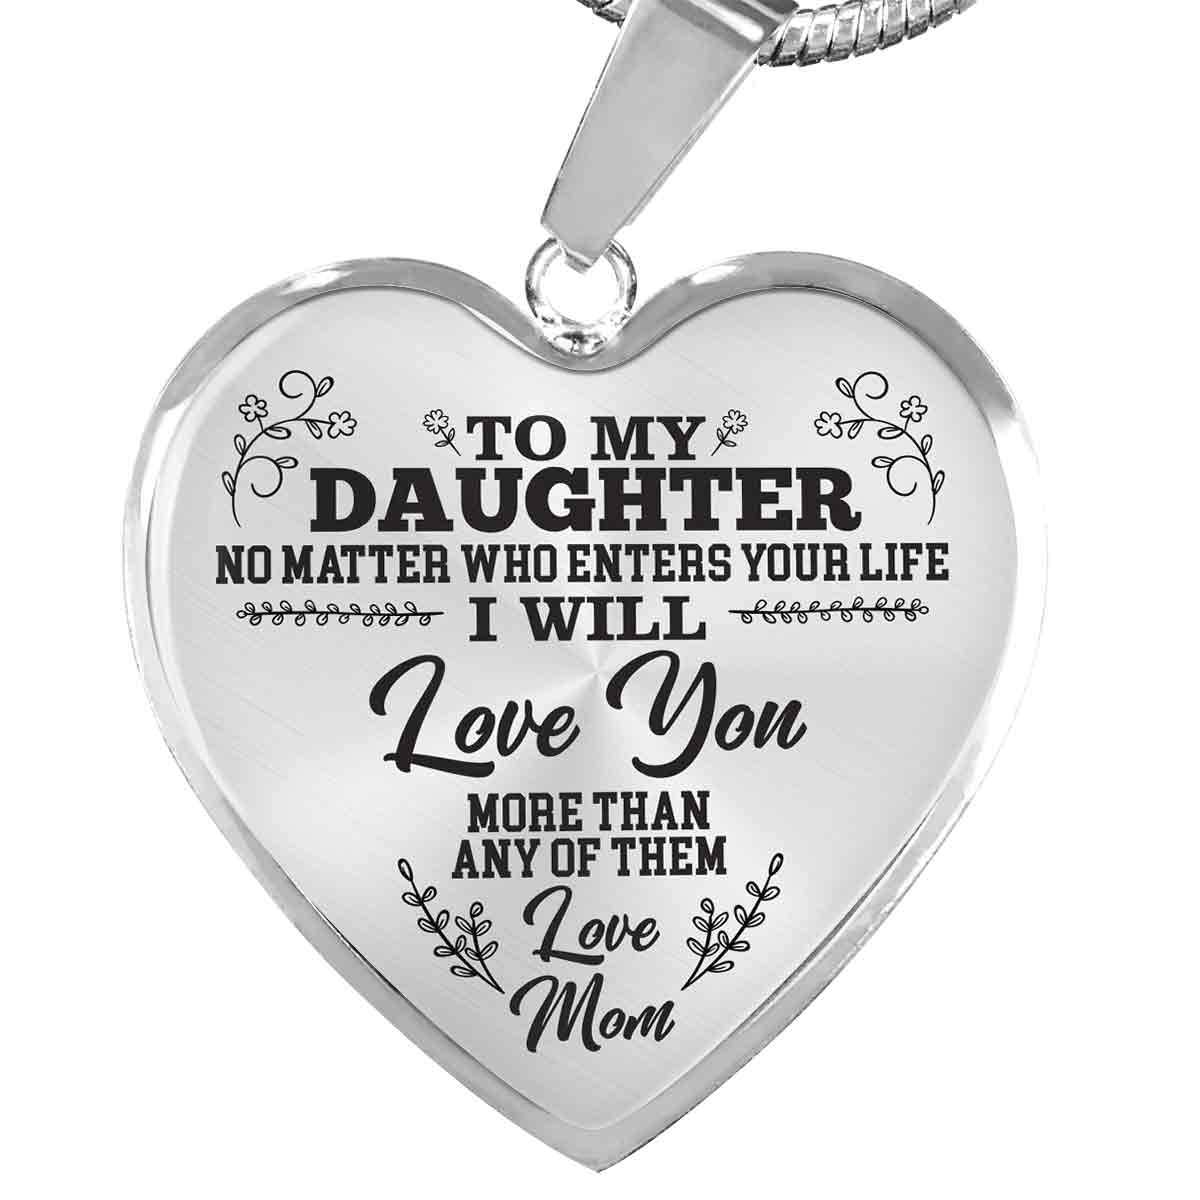 To My Daughter - Love Mom - Heart Necklace